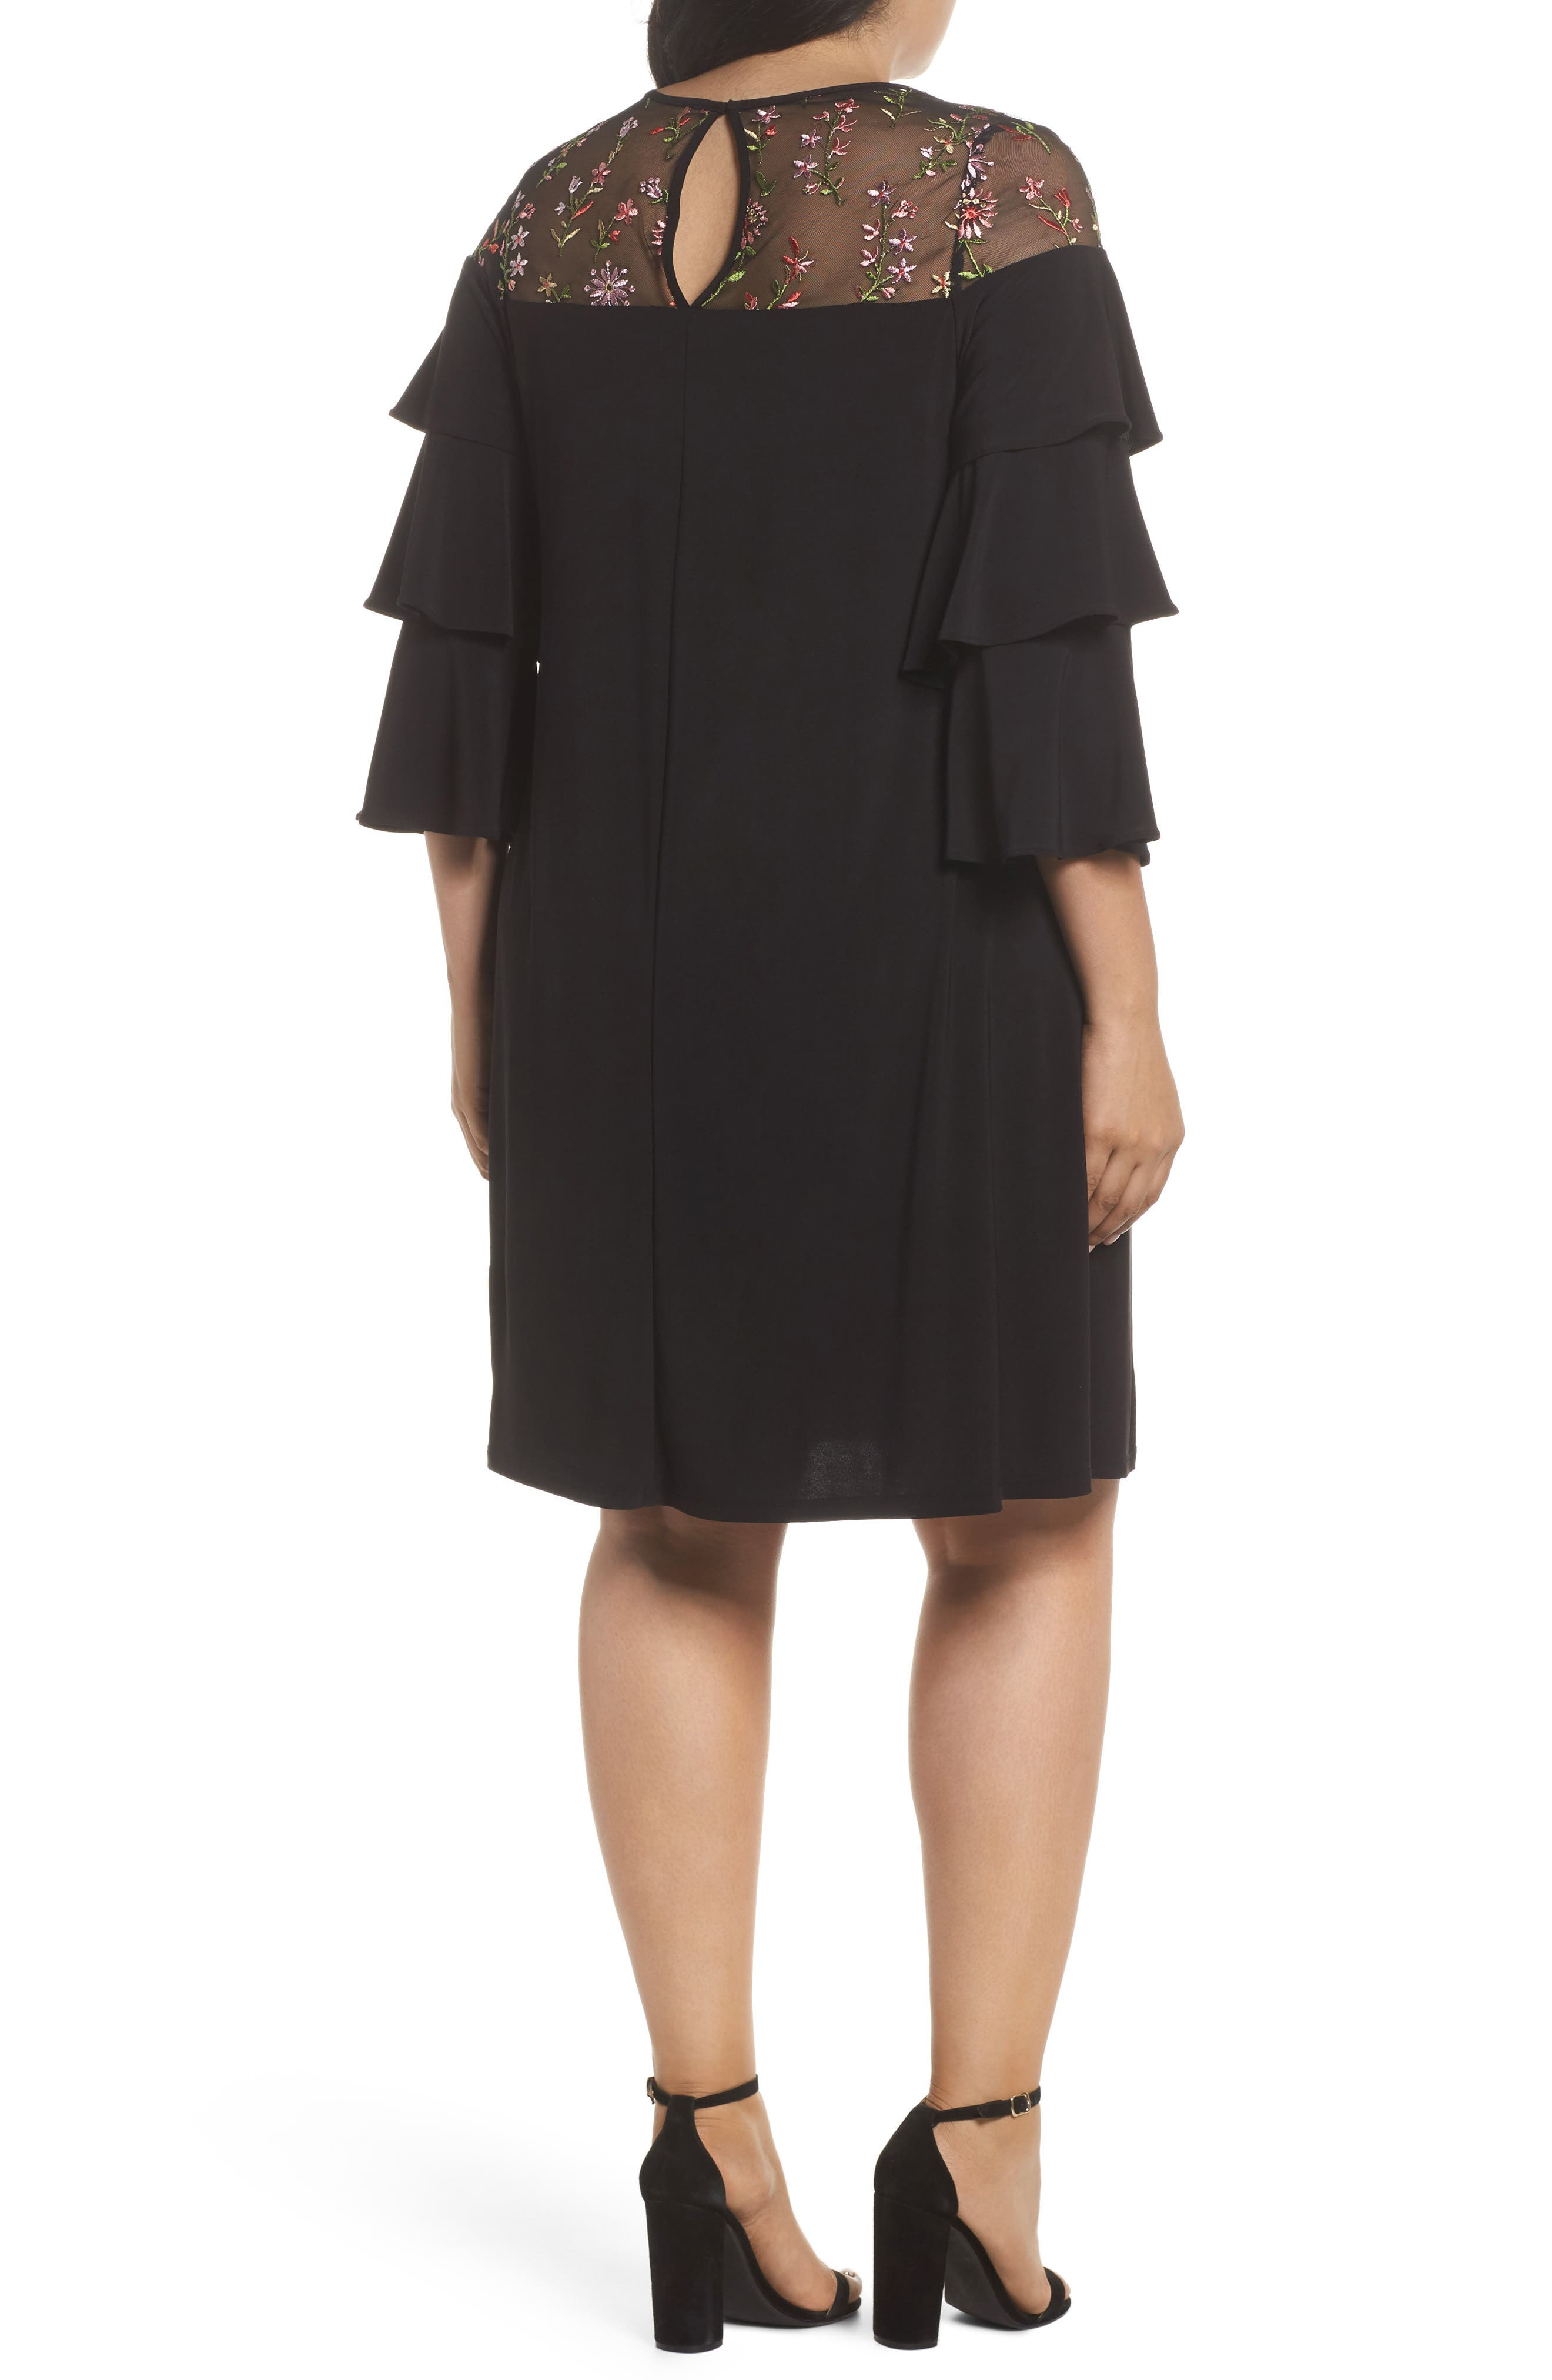 Ruffled Sleeve Embroidered Yoke A-Line Dress,                             Alternate thumbnail 2, color,                             002